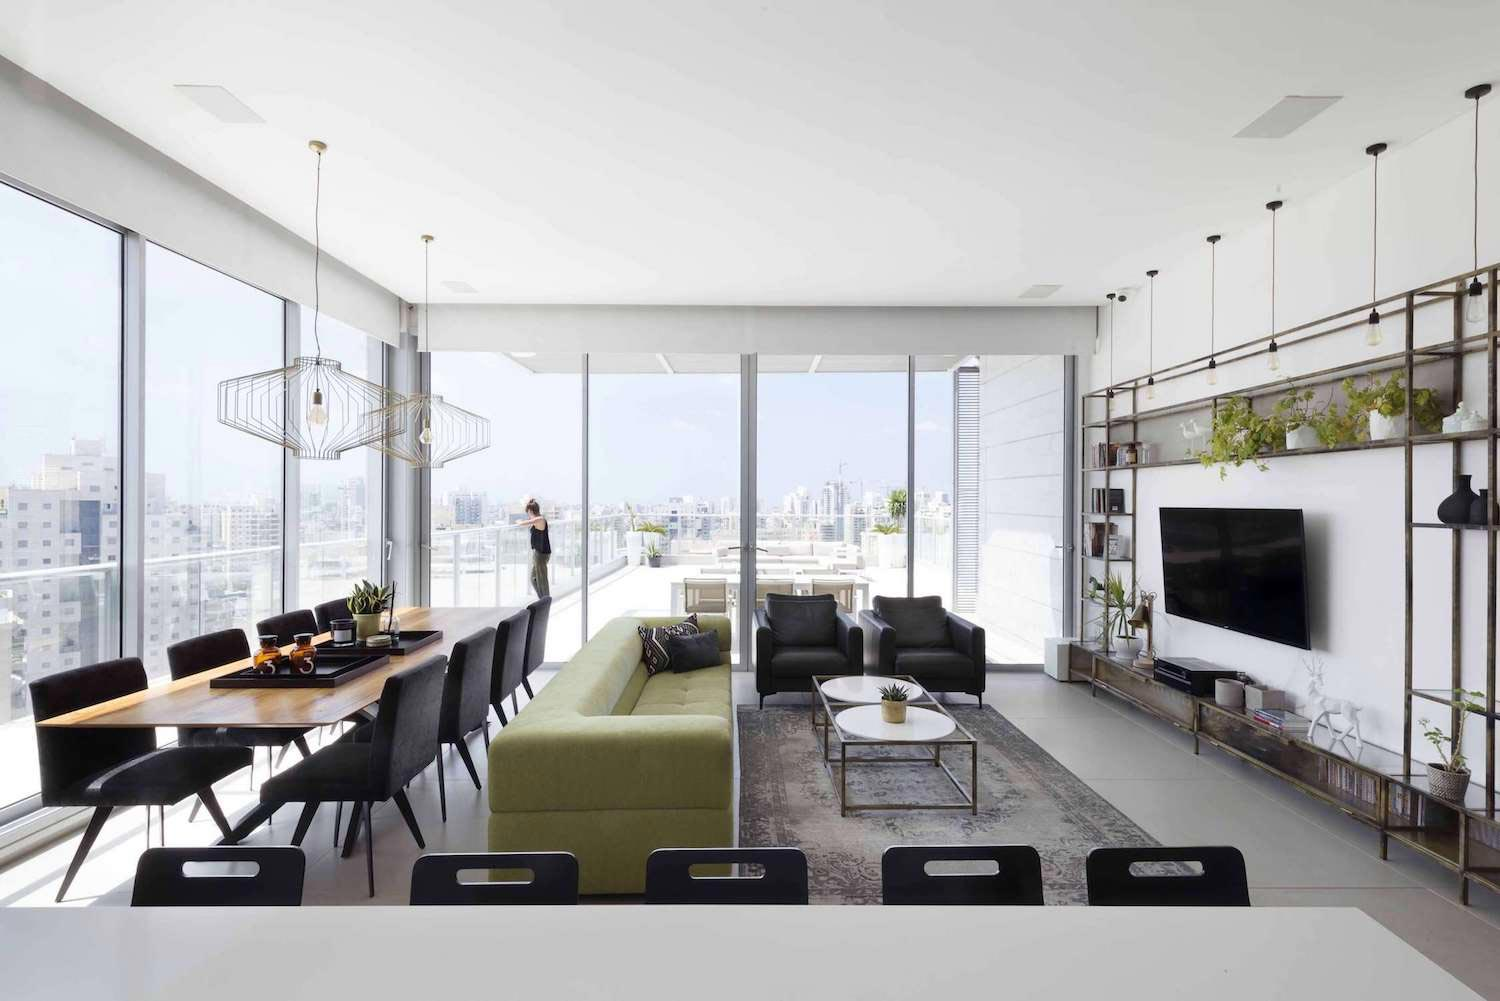 Minimalist design concept where the view remains the main